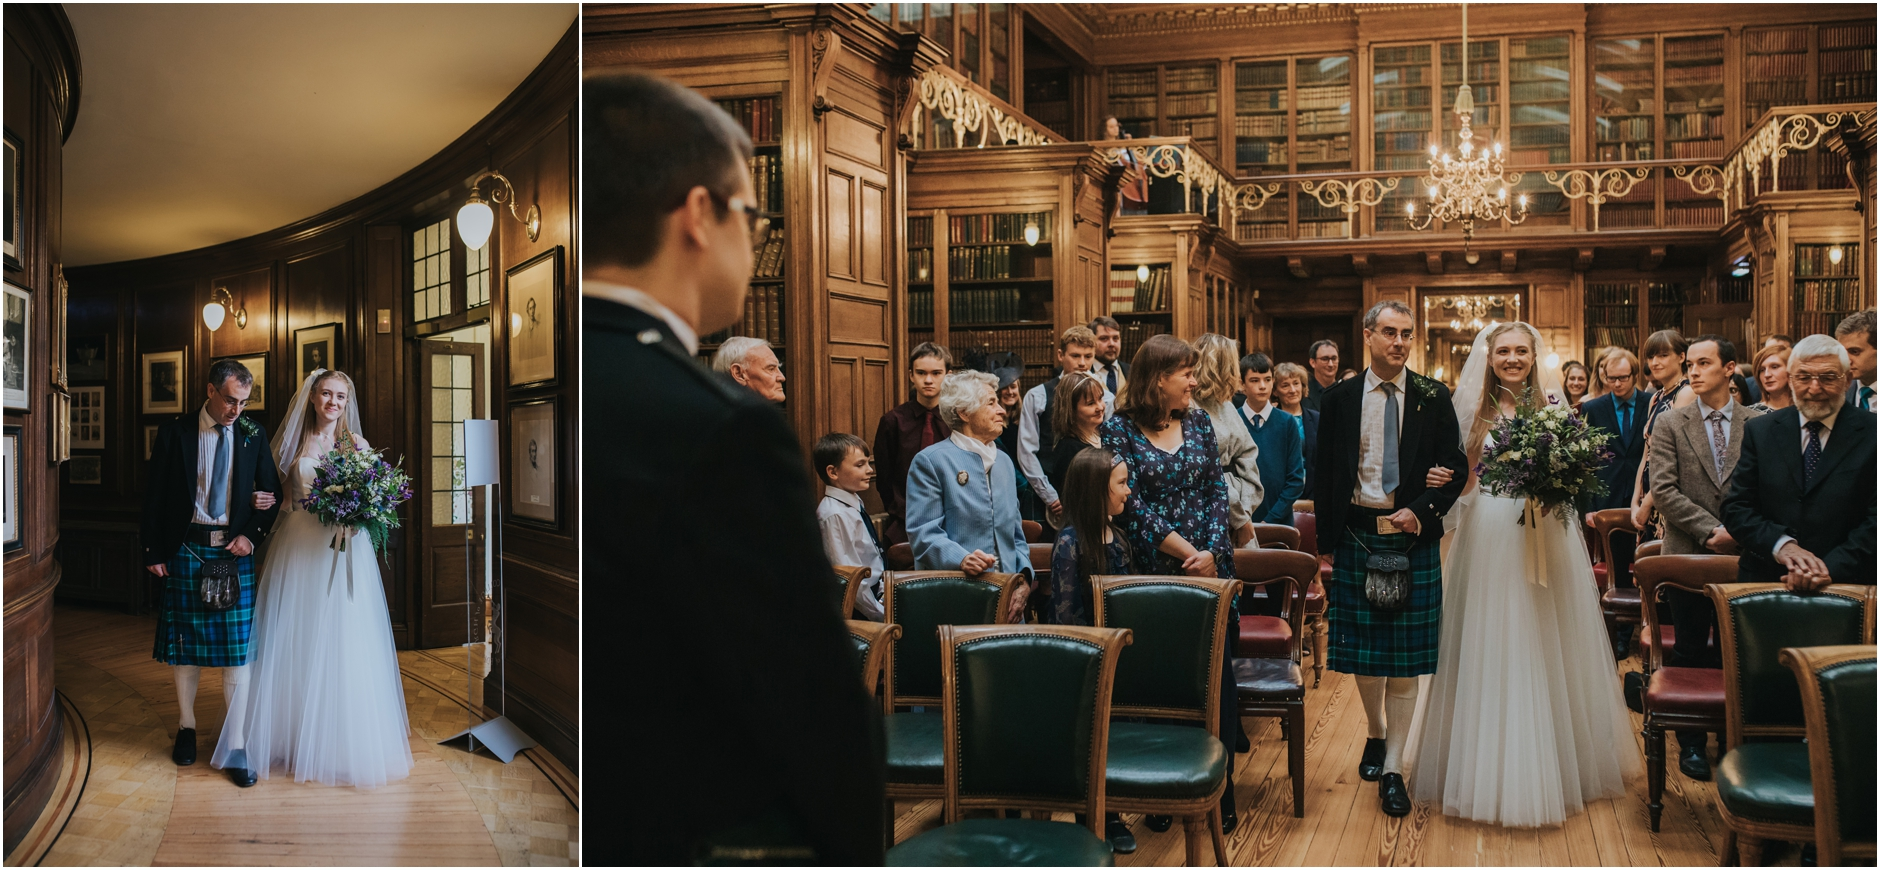 royal college of physicians edinburgh wedding photographer